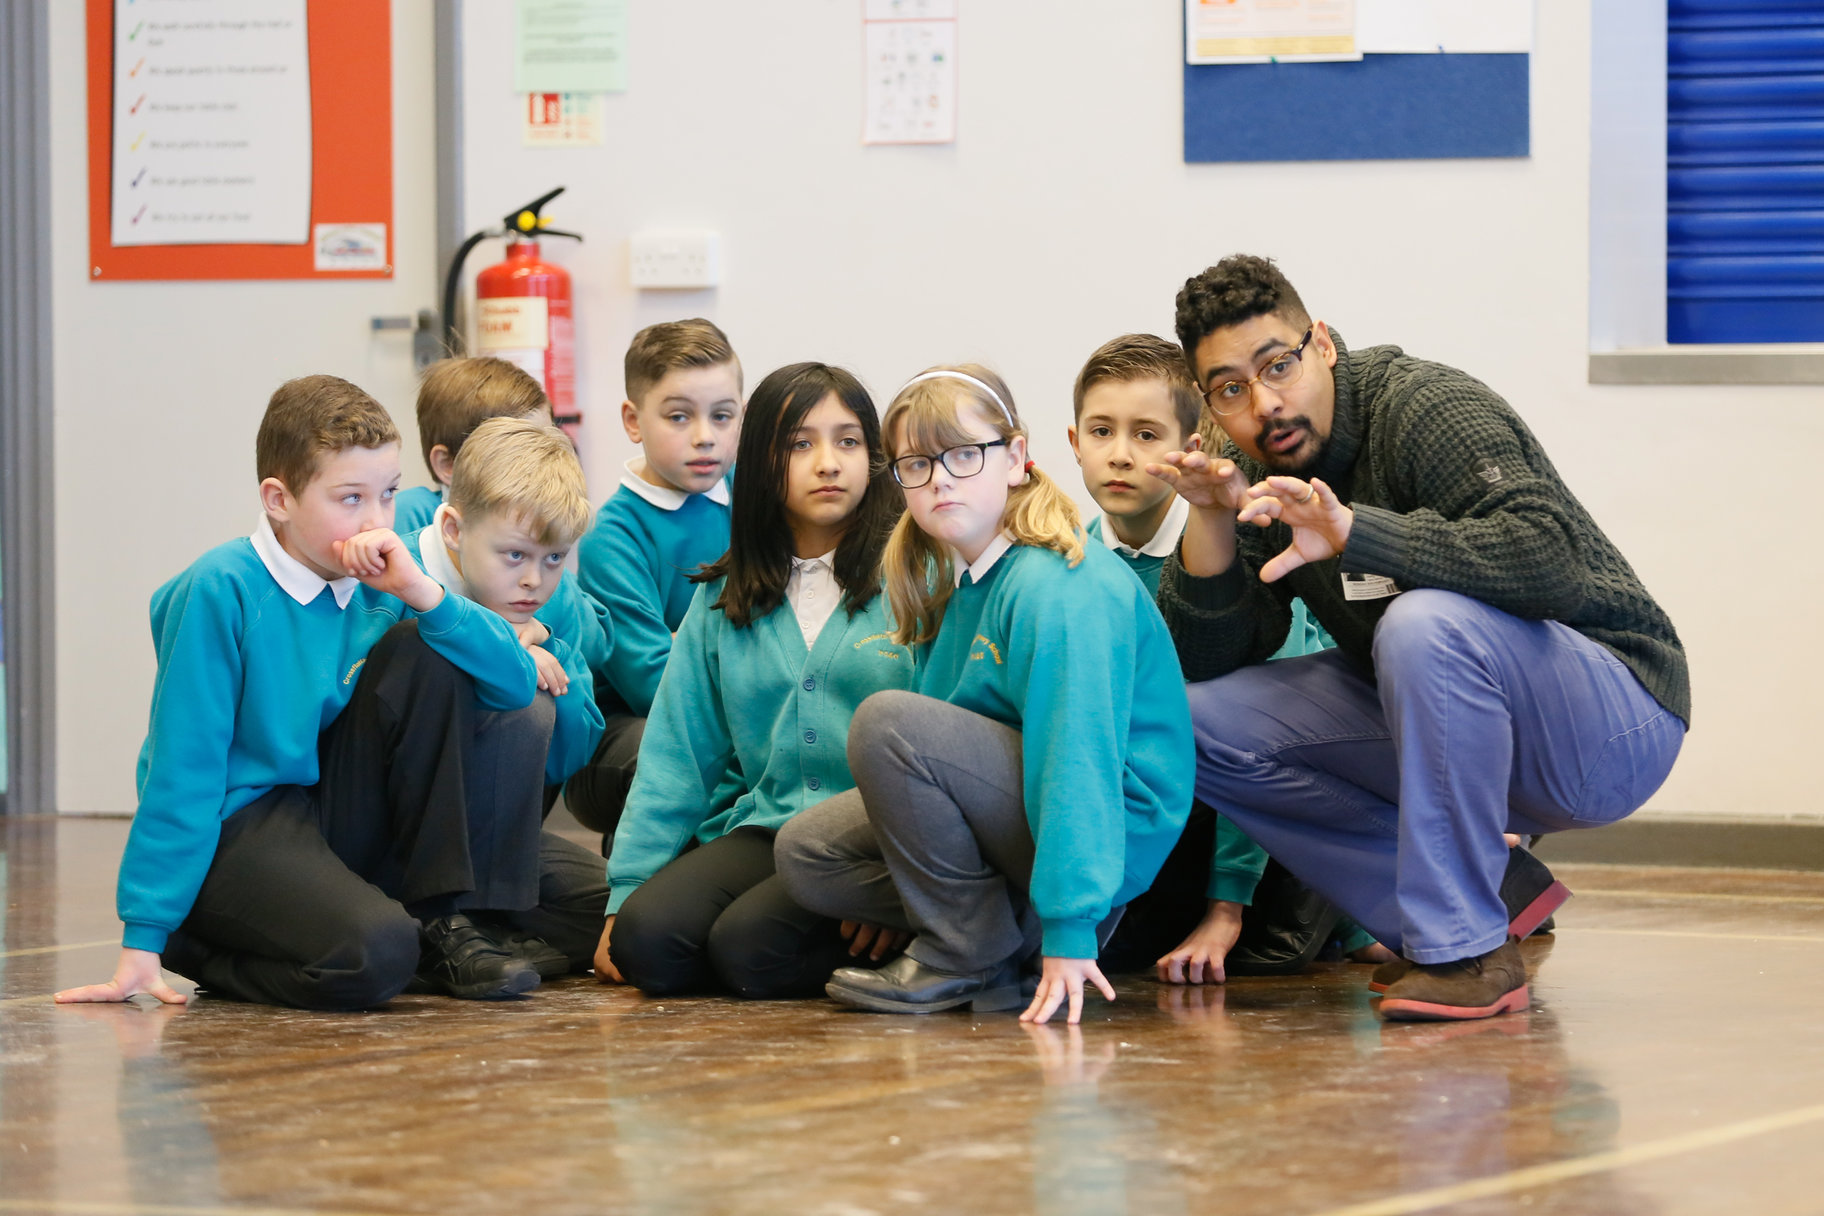 A man crouching down with a group of schoolchildren